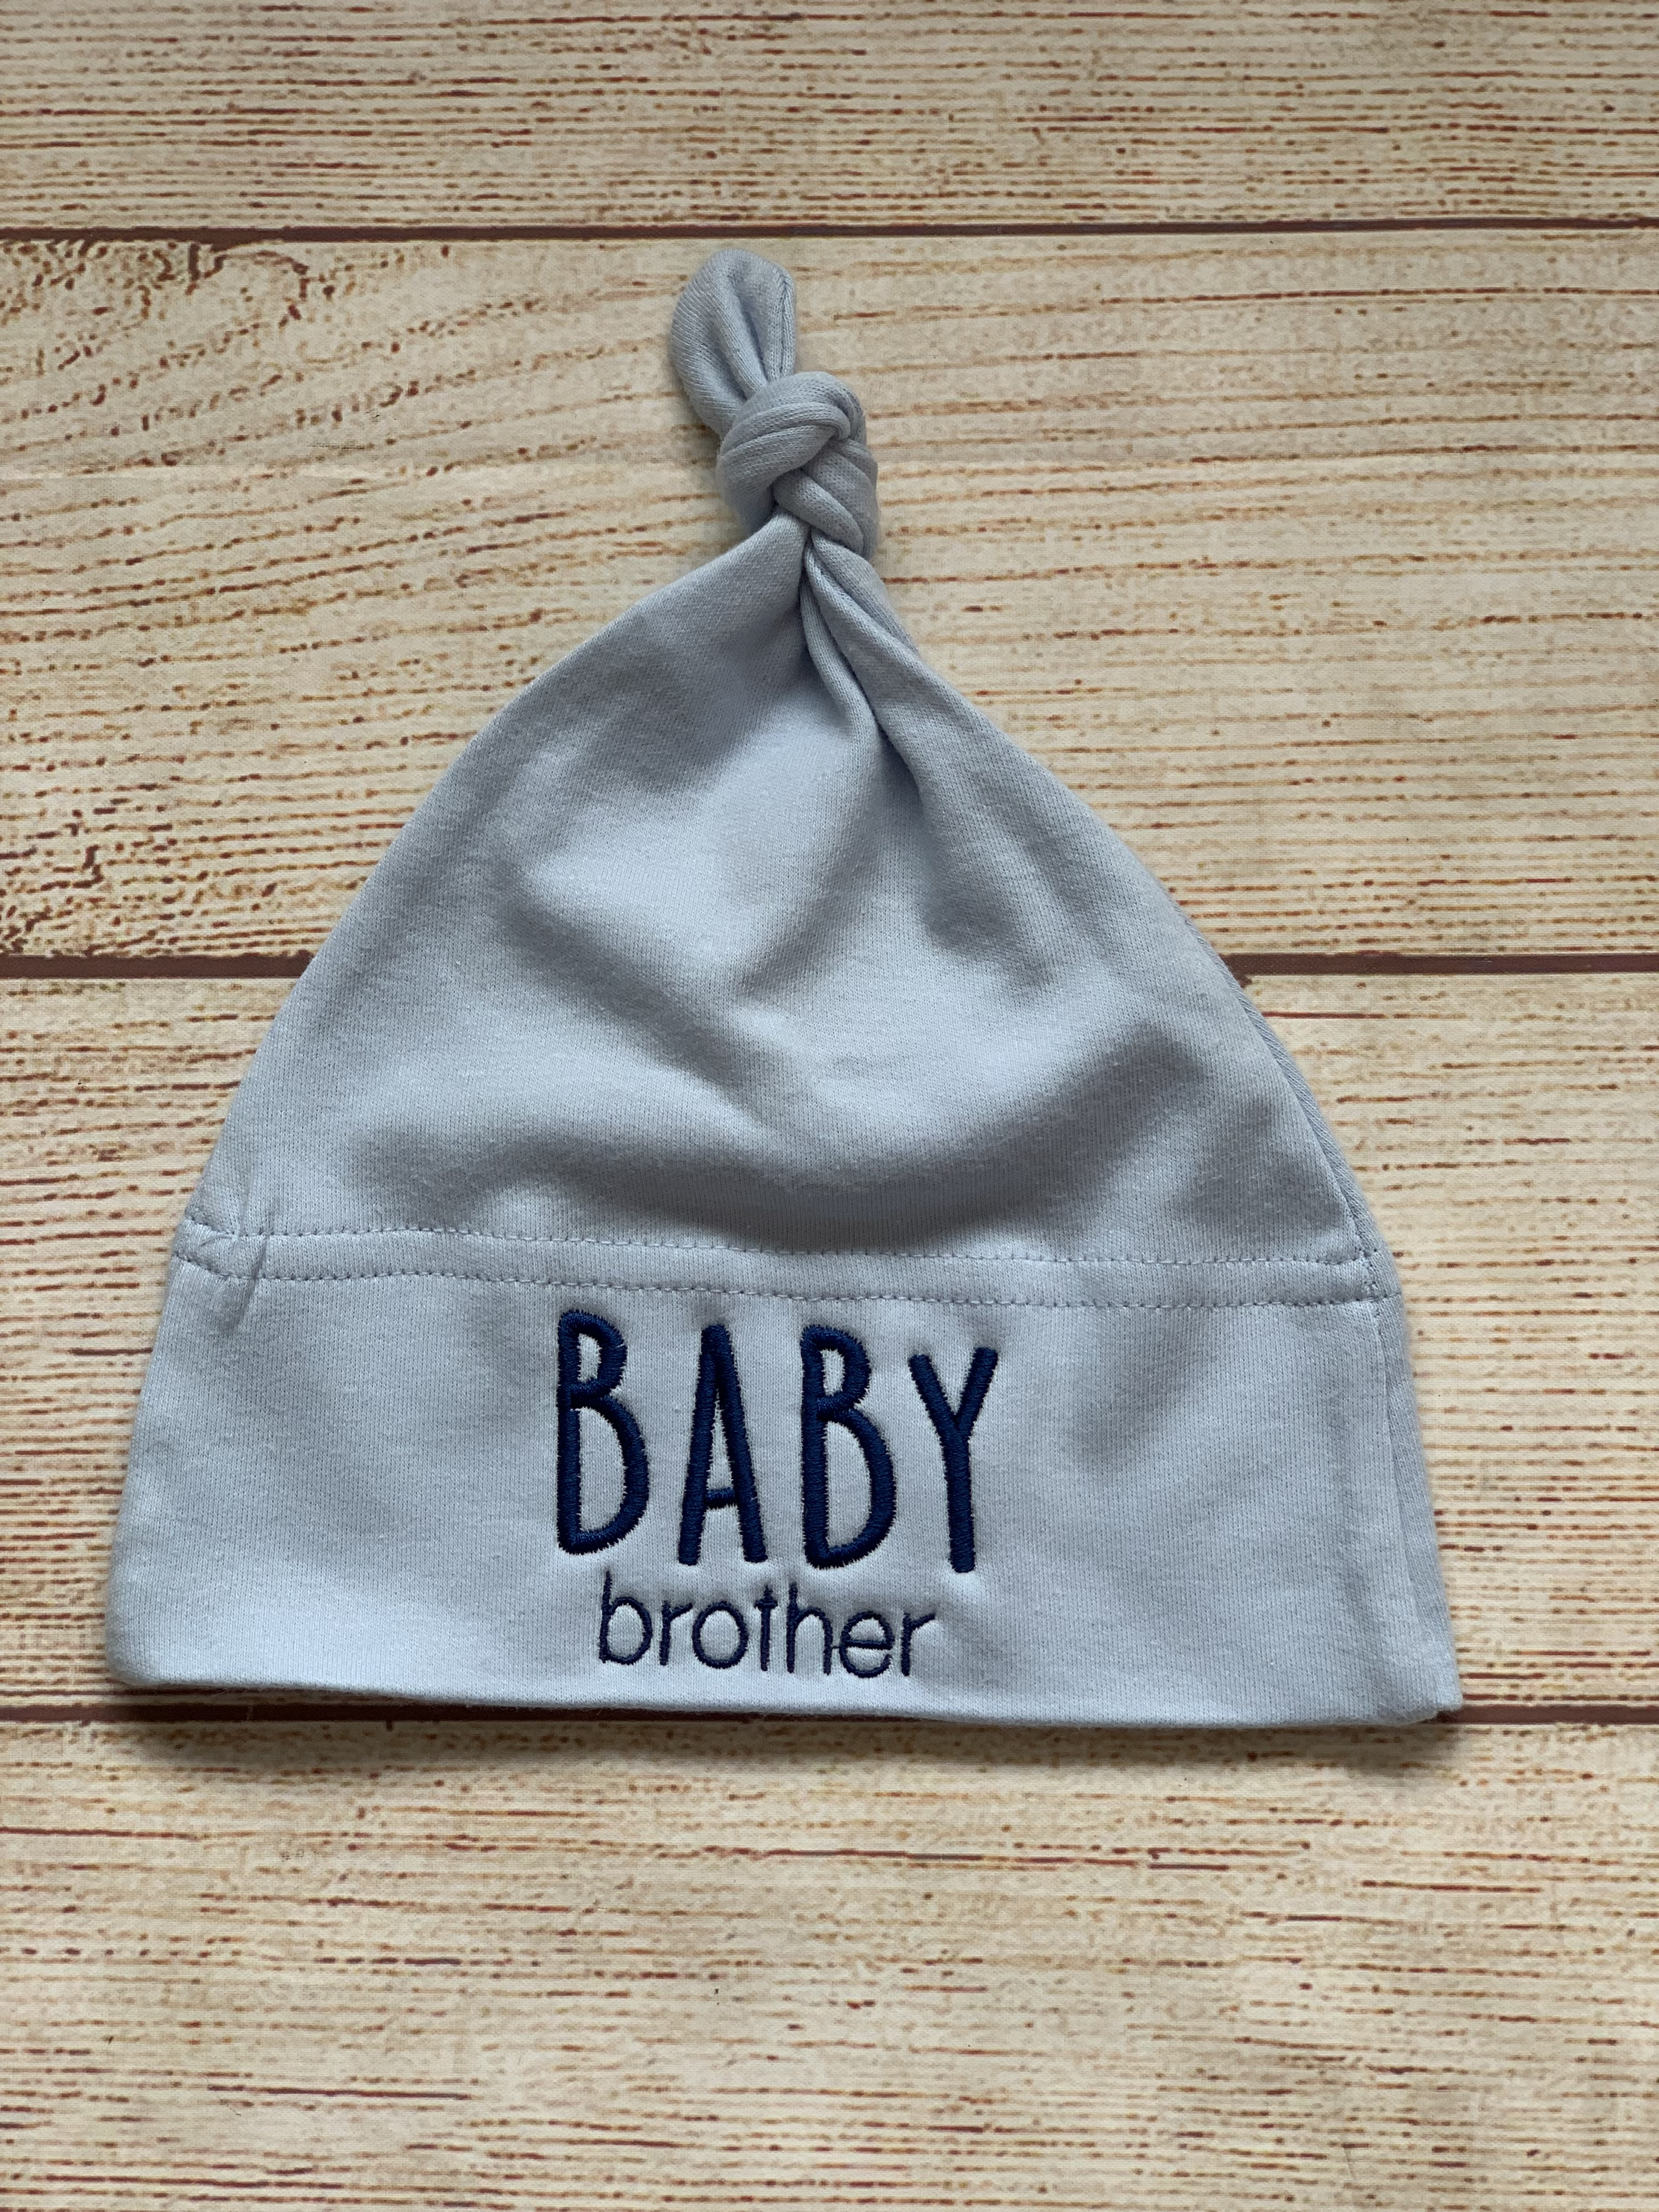 Baby Brother knot cap is the perfect little gift for the perfect little brother by Wicked Stitches Gifts